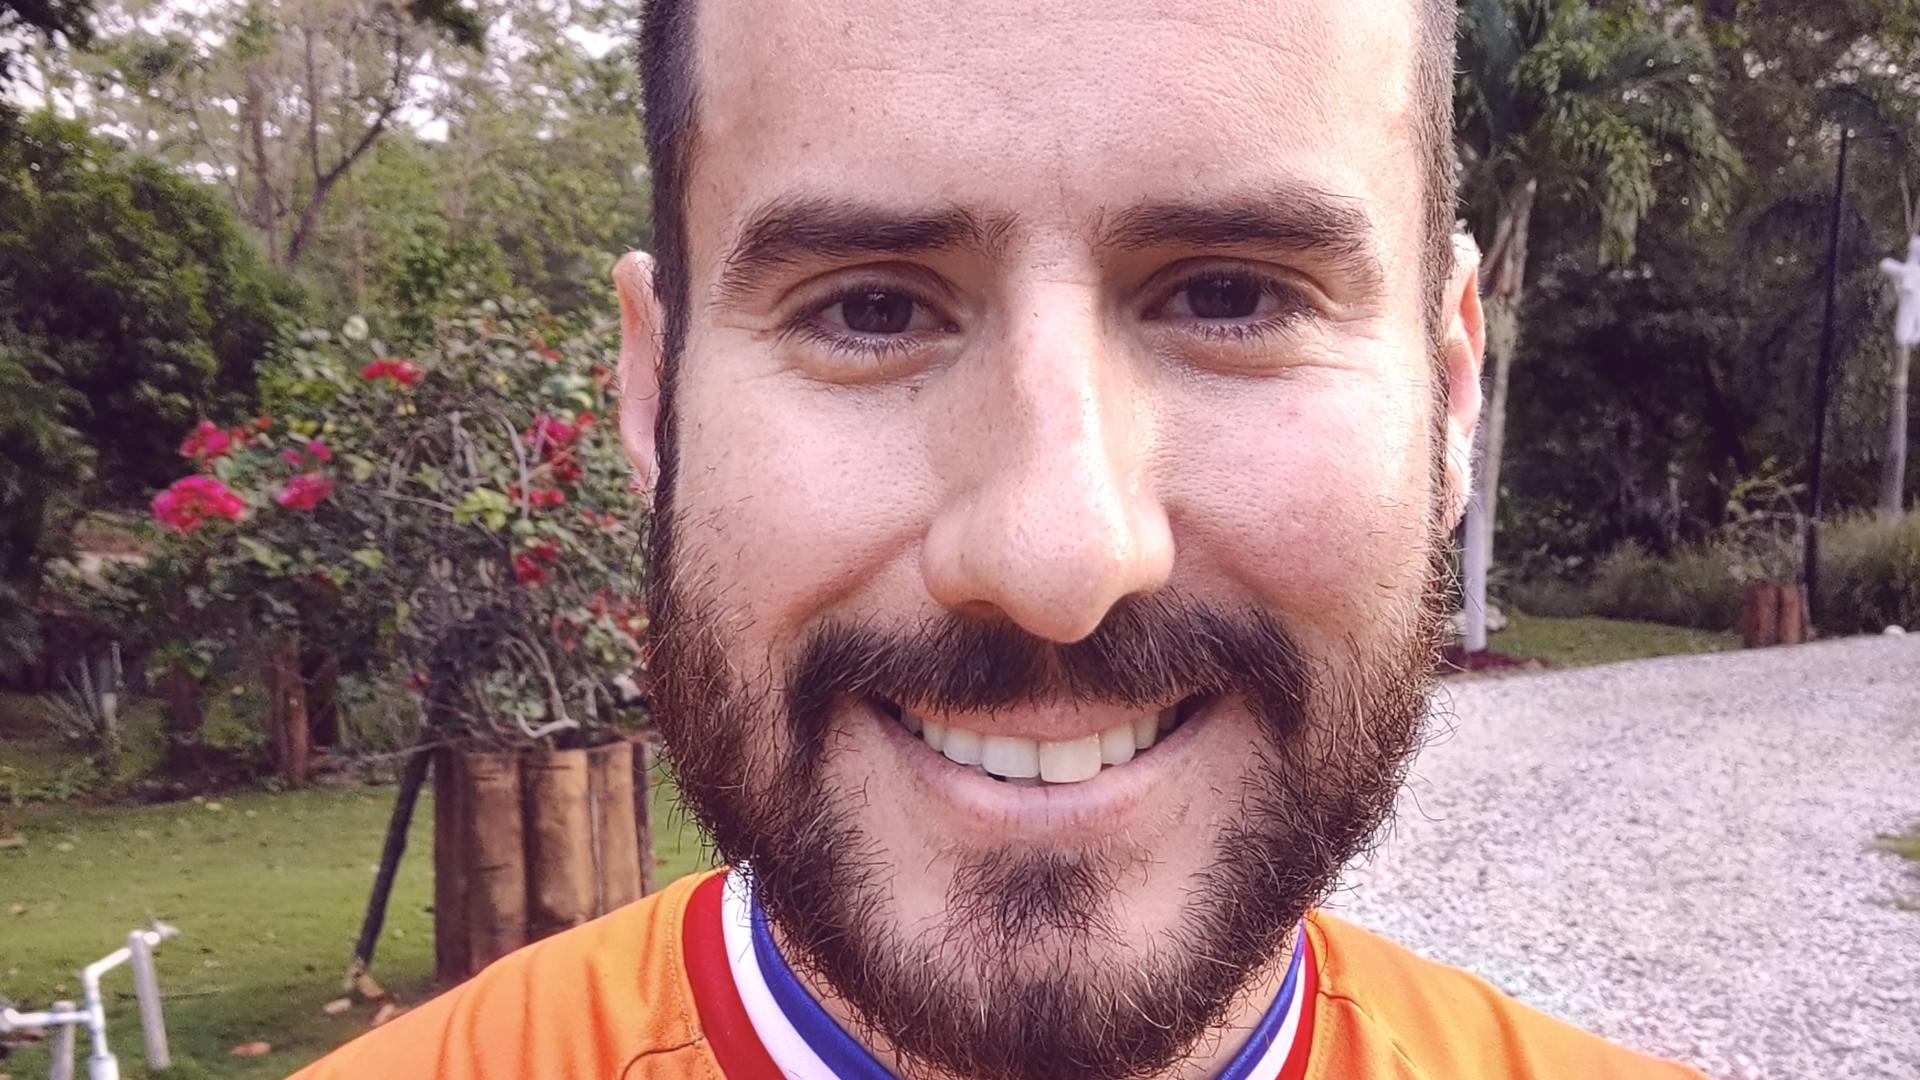 Alejandro smiling at camera wearing orange jumper